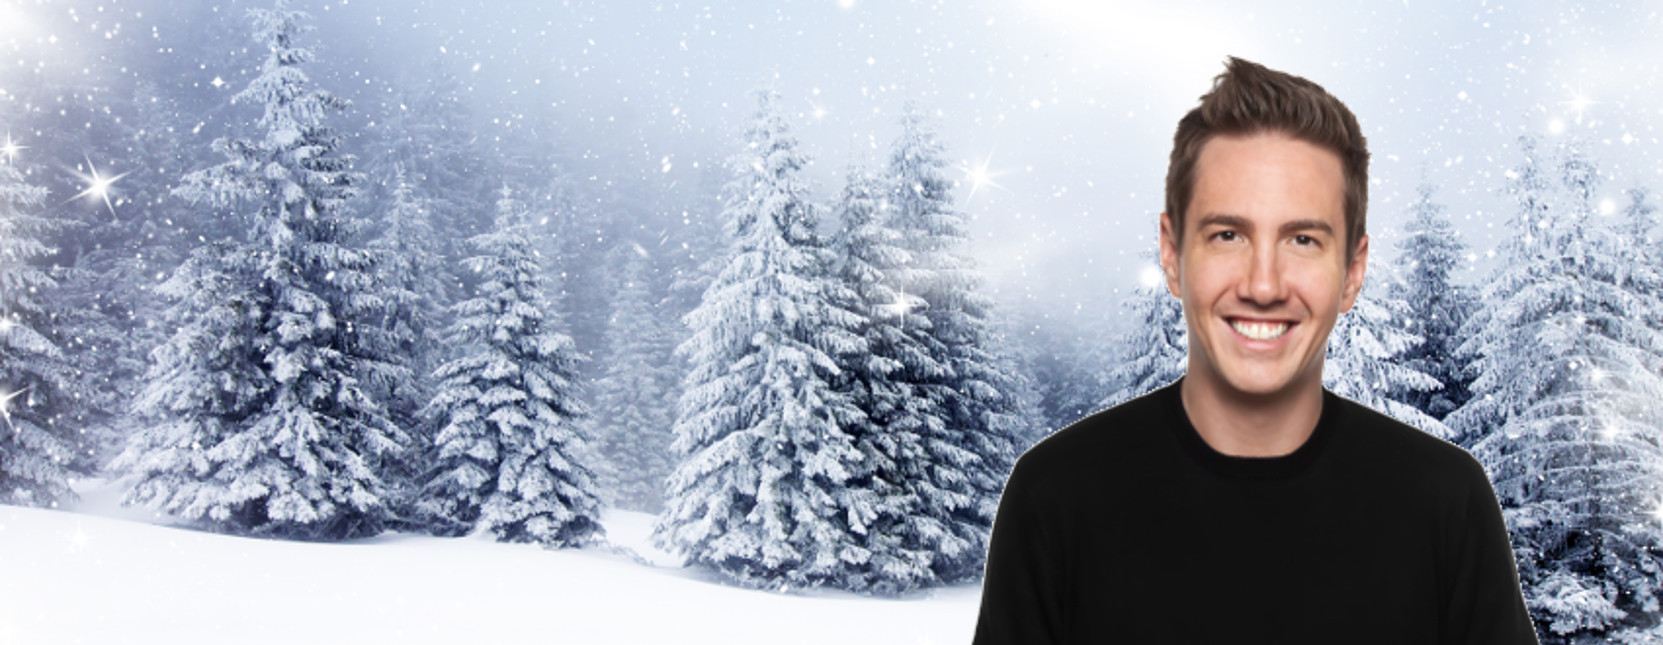 1663x645_2016_clinton_christmas_banner changed